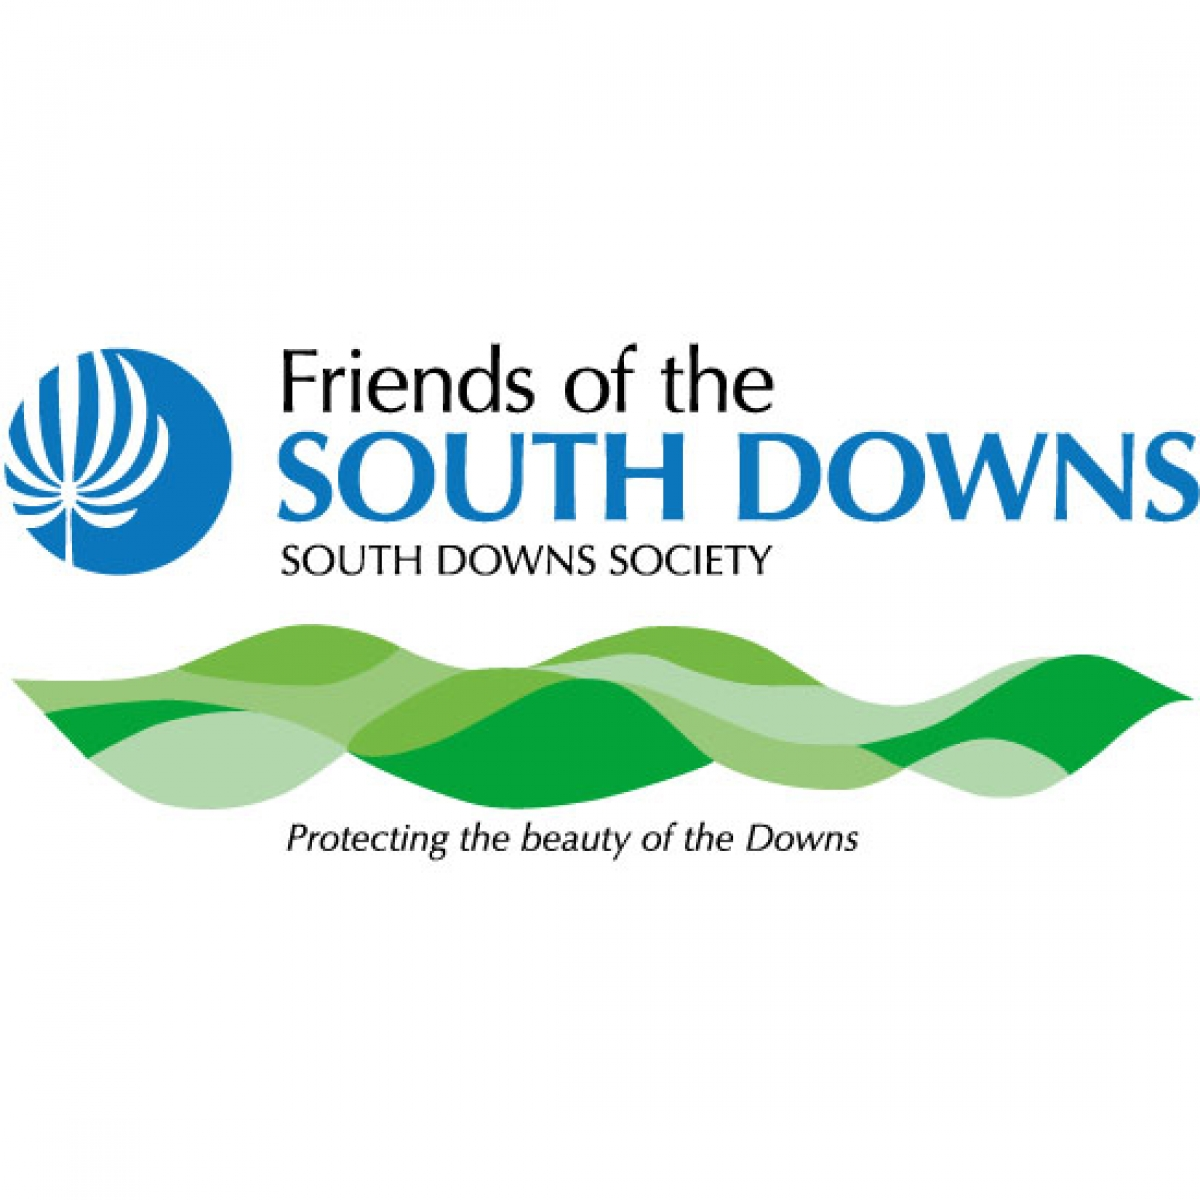 Friends of the South Downs (South Downs Society) eCards